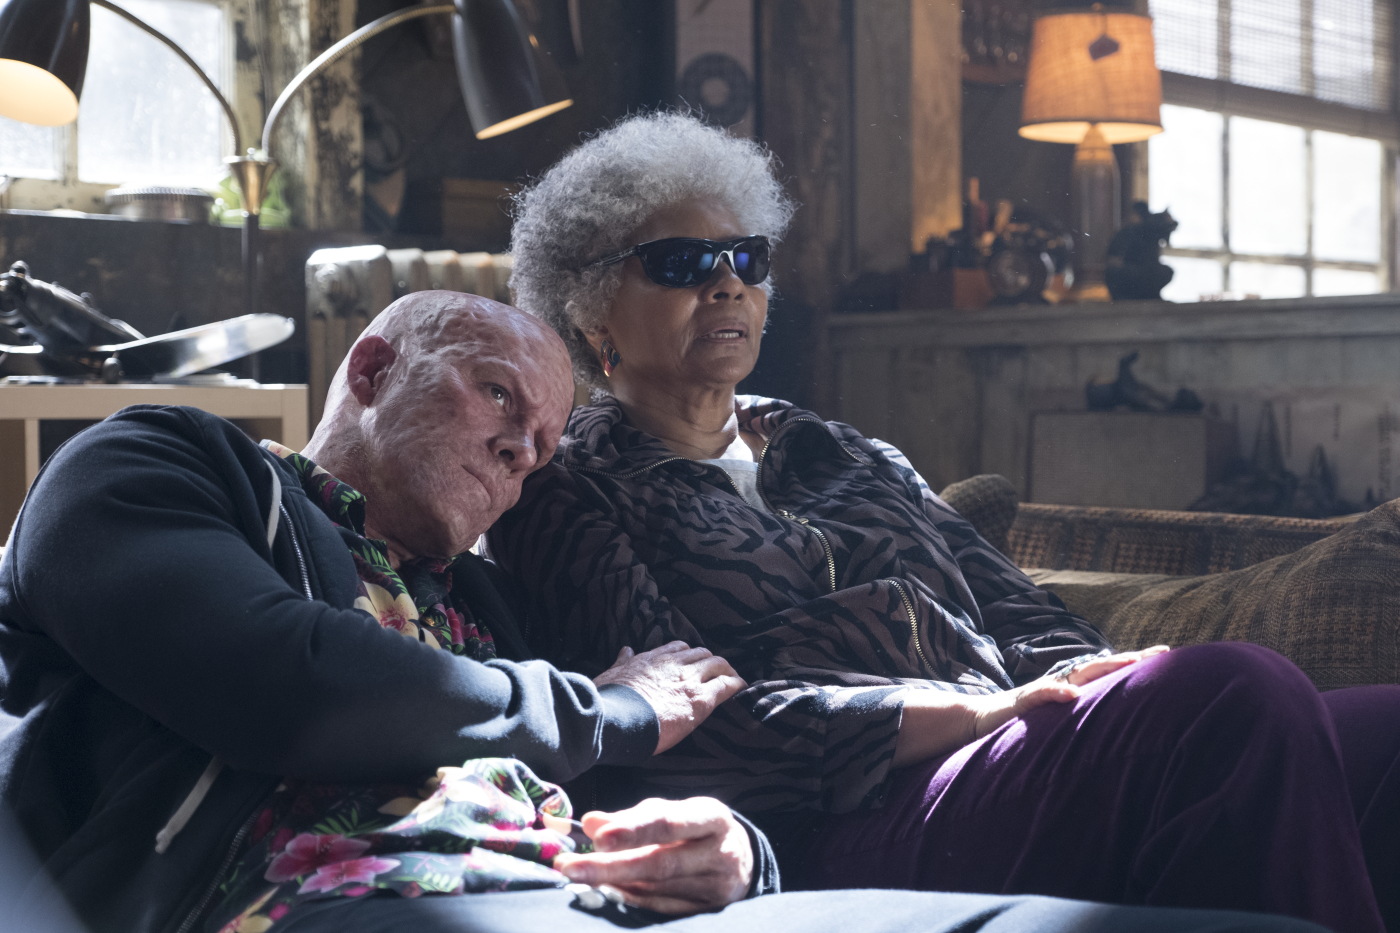 Szenenbild aus DEADPOOL 2 (2018) - Deadpool (Ryan Reynolds) und Blind Al (Leslie Uggams) - © 20th Century Fox